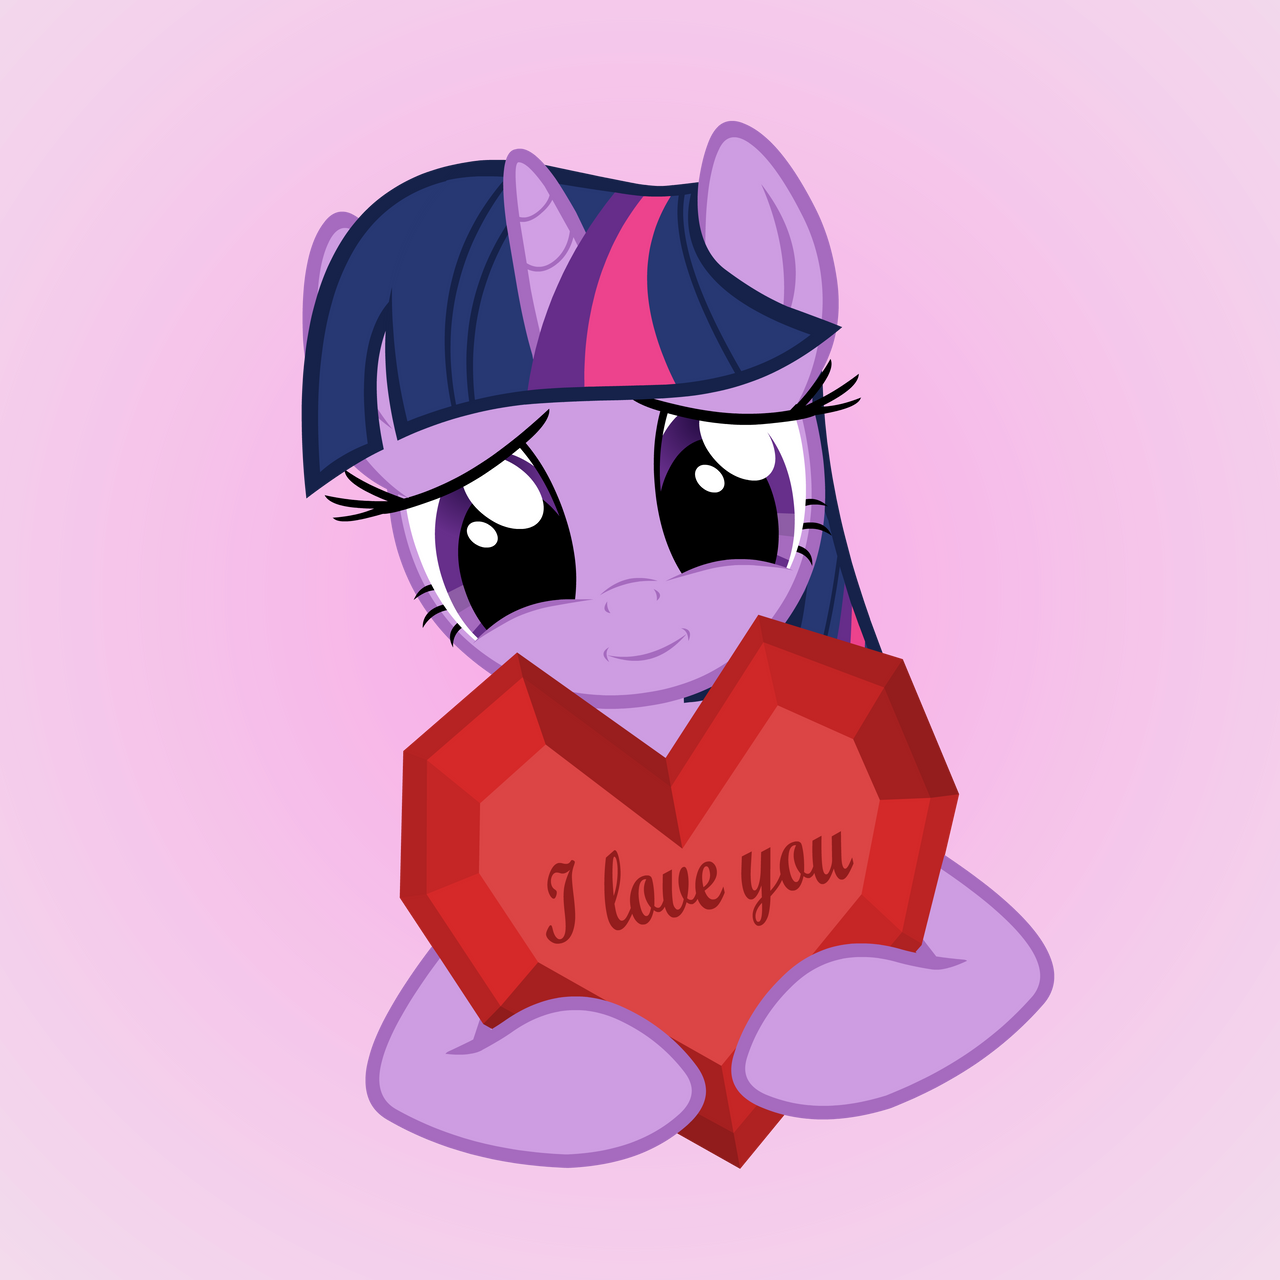 Twilight loves you by GAlekz